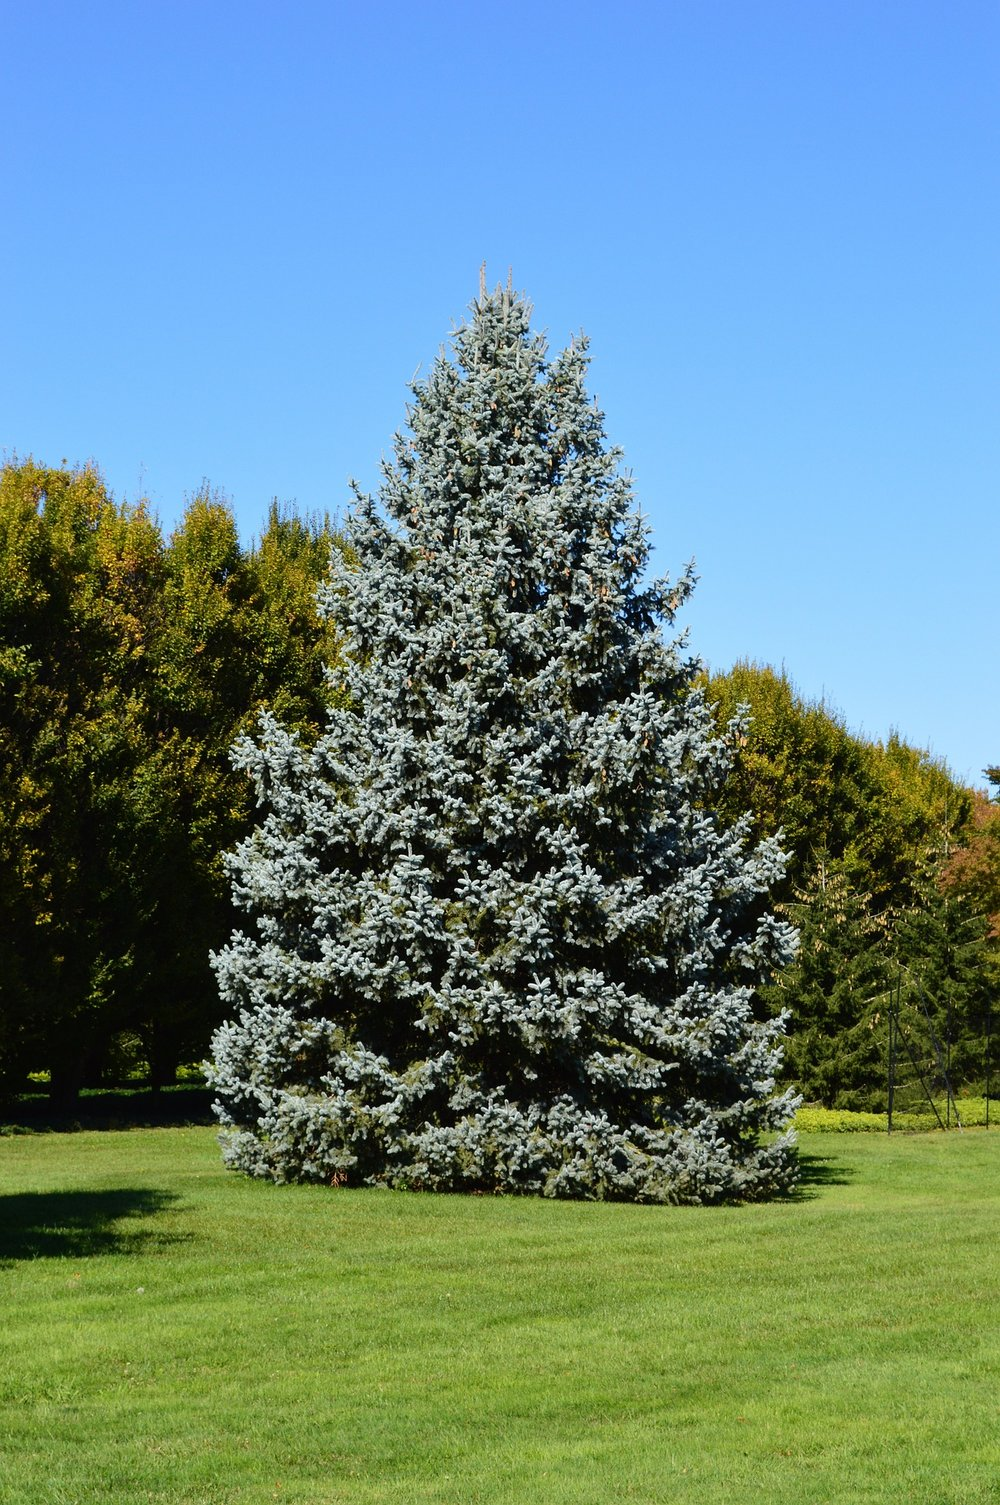 Spruces - Sometimes, one tree is enough. You don't need a row or a hedge, just a well-placed large tree to obscure an eyesore from either direction. Spruces fit nicely into that category.Zone: 2-8Size: 40'-60' x 10'-20' (Norway),10'-15 x 10'-15' (smaller blue spruces)Cultivars Suggested: 'Fat Albert', 'Baby Blue Eyes', Norway, OrientalCulture: Full sun, does not like wet feet, good wind screenGrowth rate: SlowPests and Diseases: Needle cast, canker, bagworms*Colorado Blue Spruce pictured